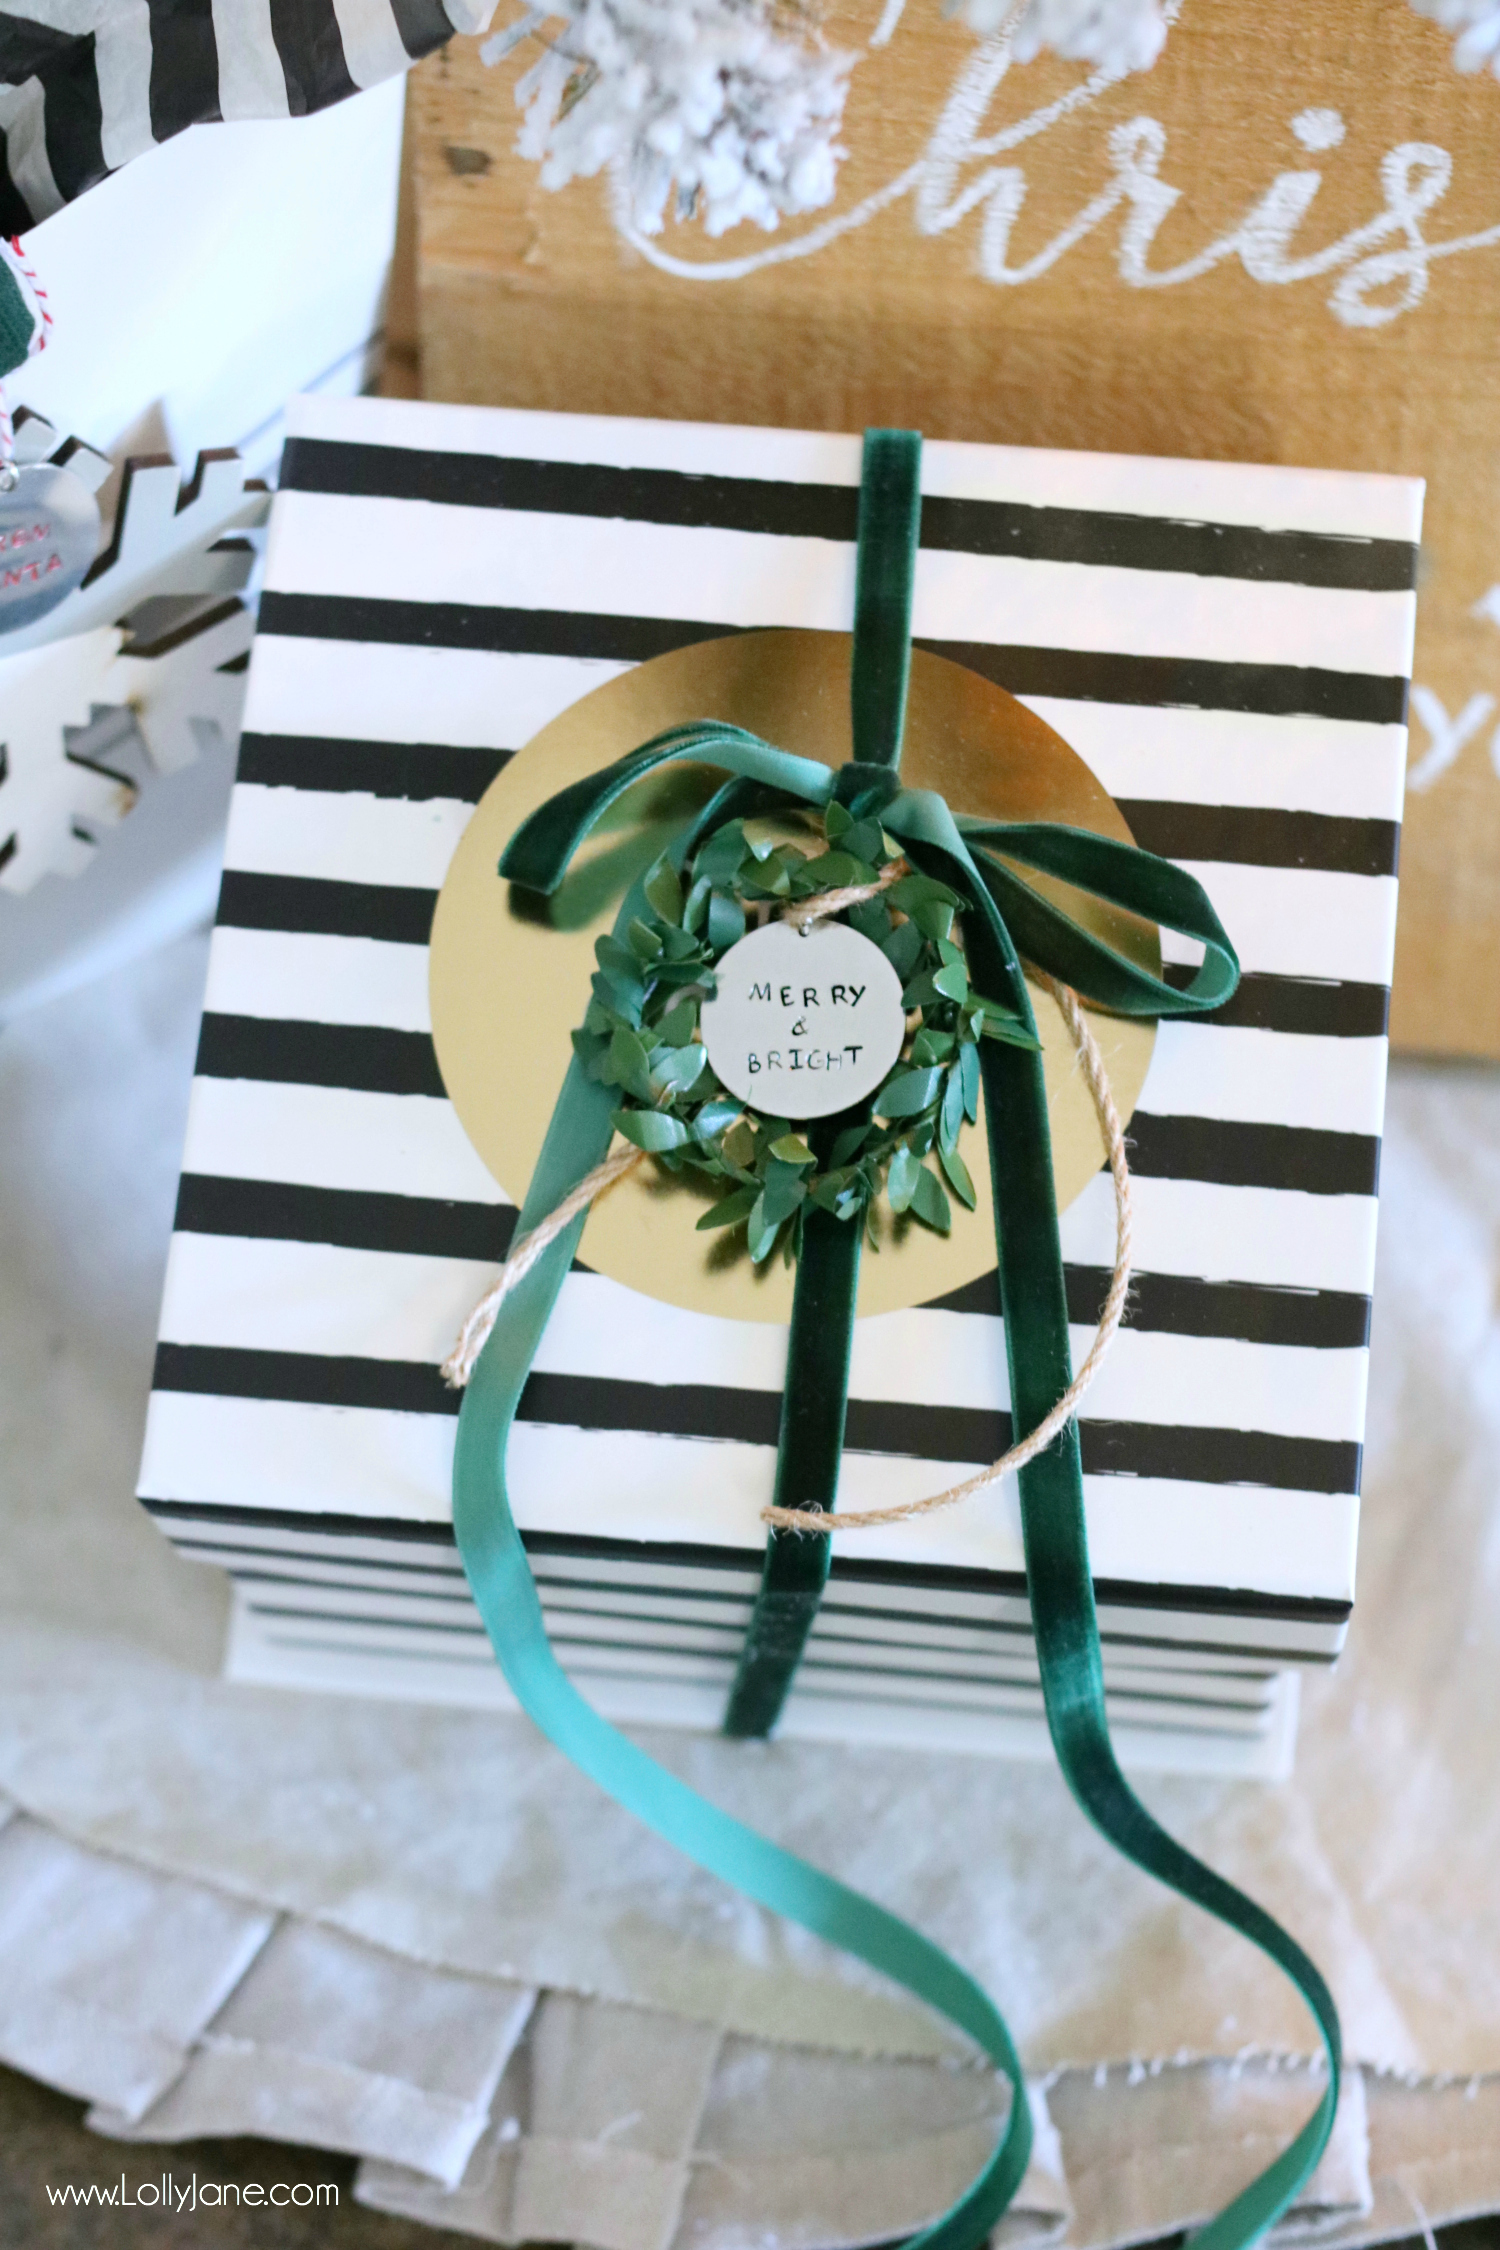 Love this DIY Stamped Metal Tag, perfect to tie onto Christmas or holiday gifts to personalize it. So pretty and EASY to make!